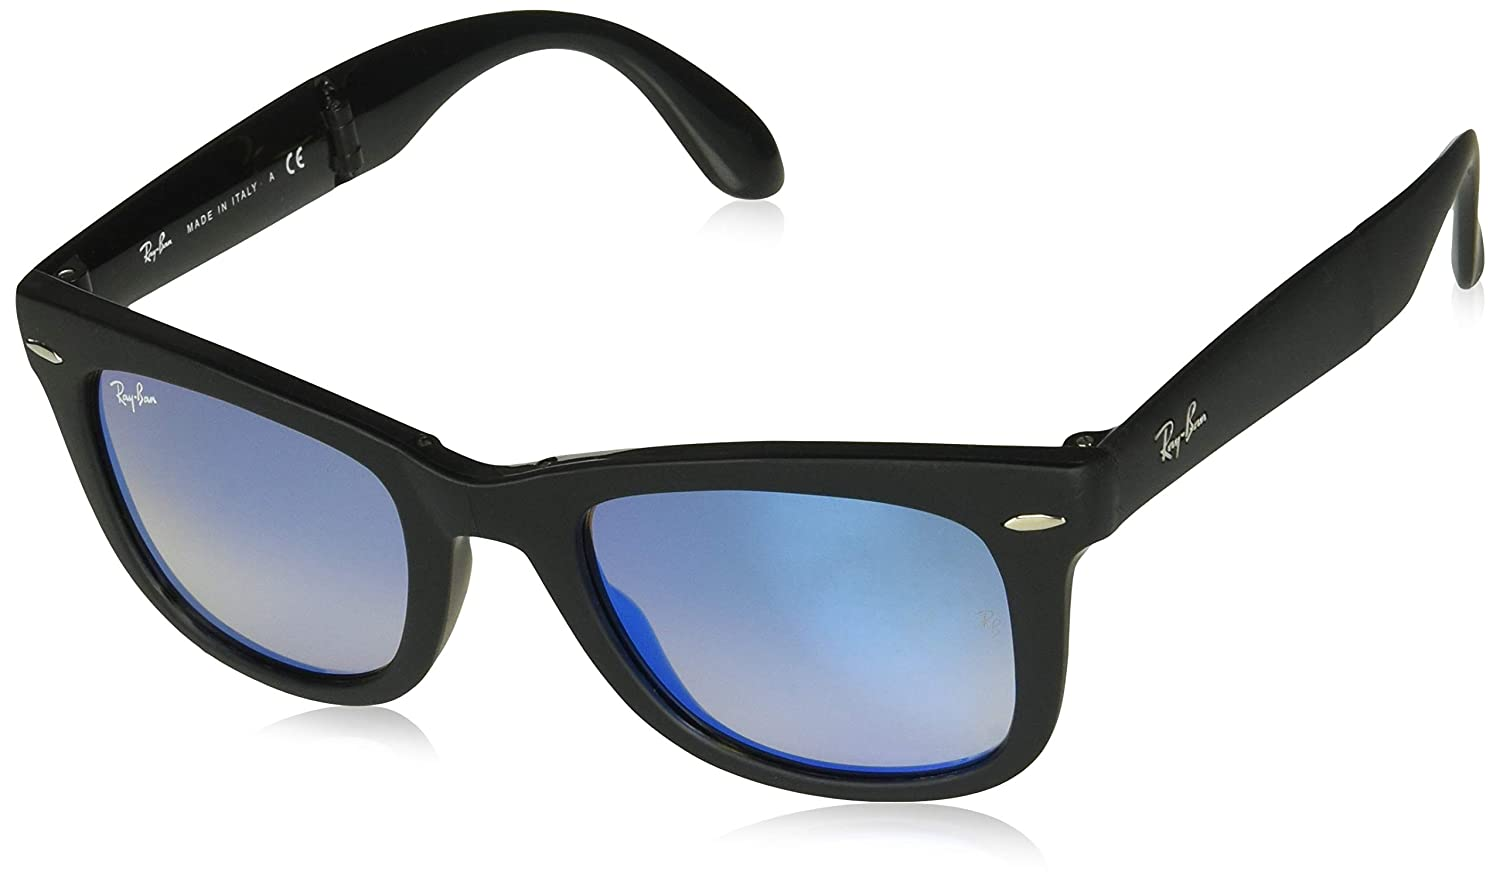 59b4b1ae75a Amazon.com  Ray-Ban Men s Folding Wayfarer Sunglasses